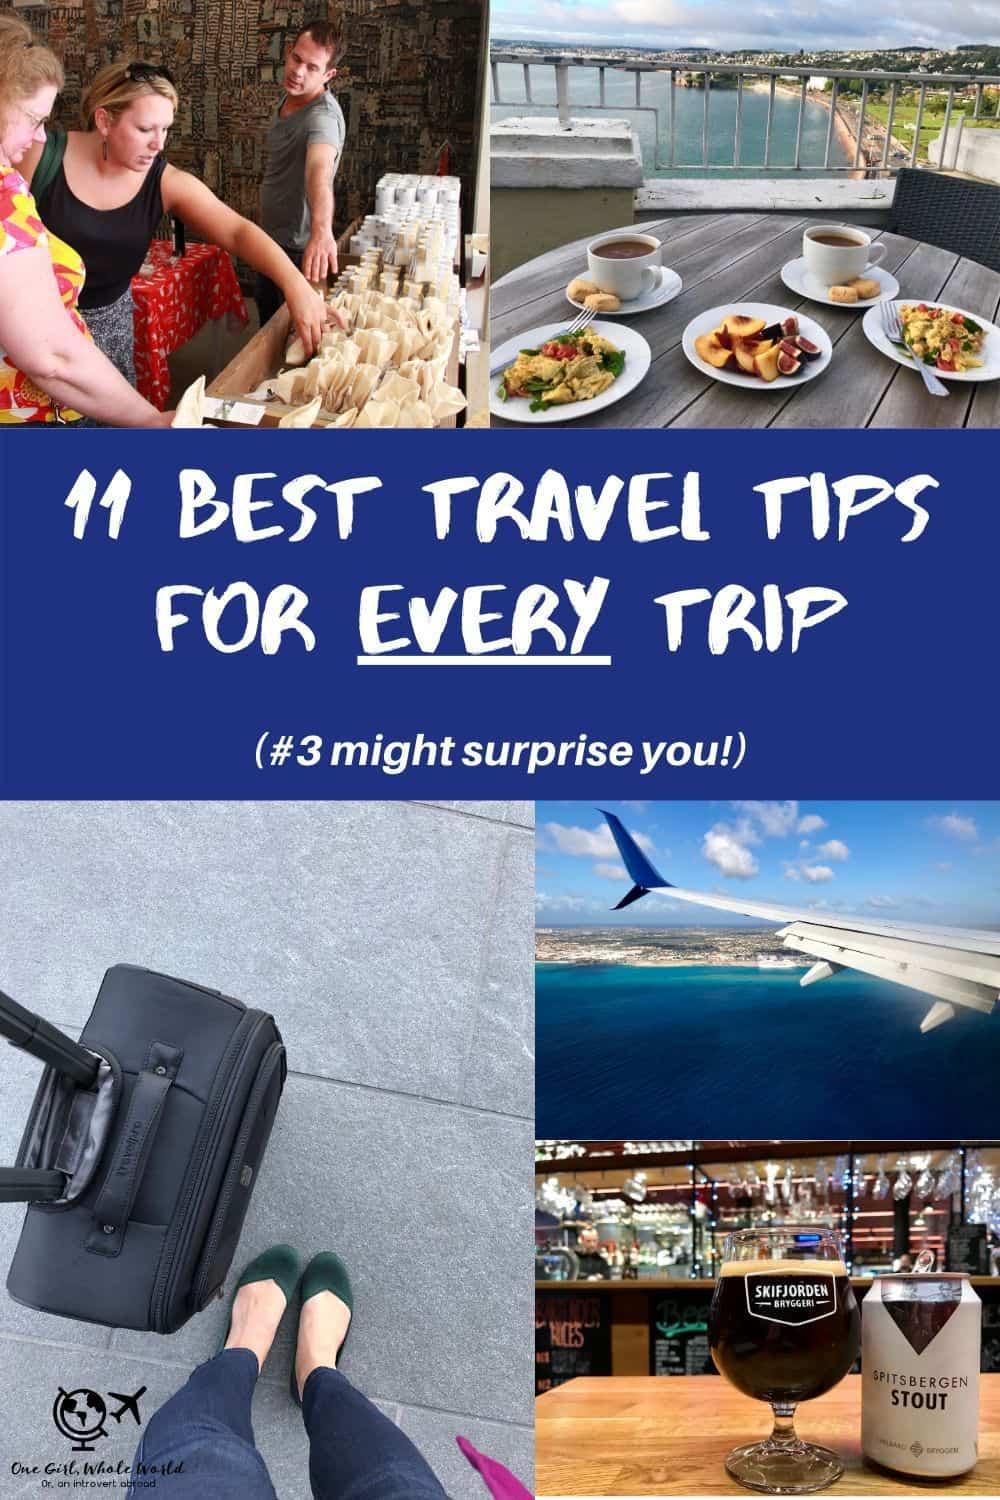 11 of my best travel tips for EVERY type of trip | No matter what type of trip you're planning, whether a quick weekend or epic adventure, these 11 tips will make sure it's as awesome as possible. From accommodation to transportation, and souvenirs to what you pack, these tips won't steer you wrong! #traveltips #traveladvice #tripplanning